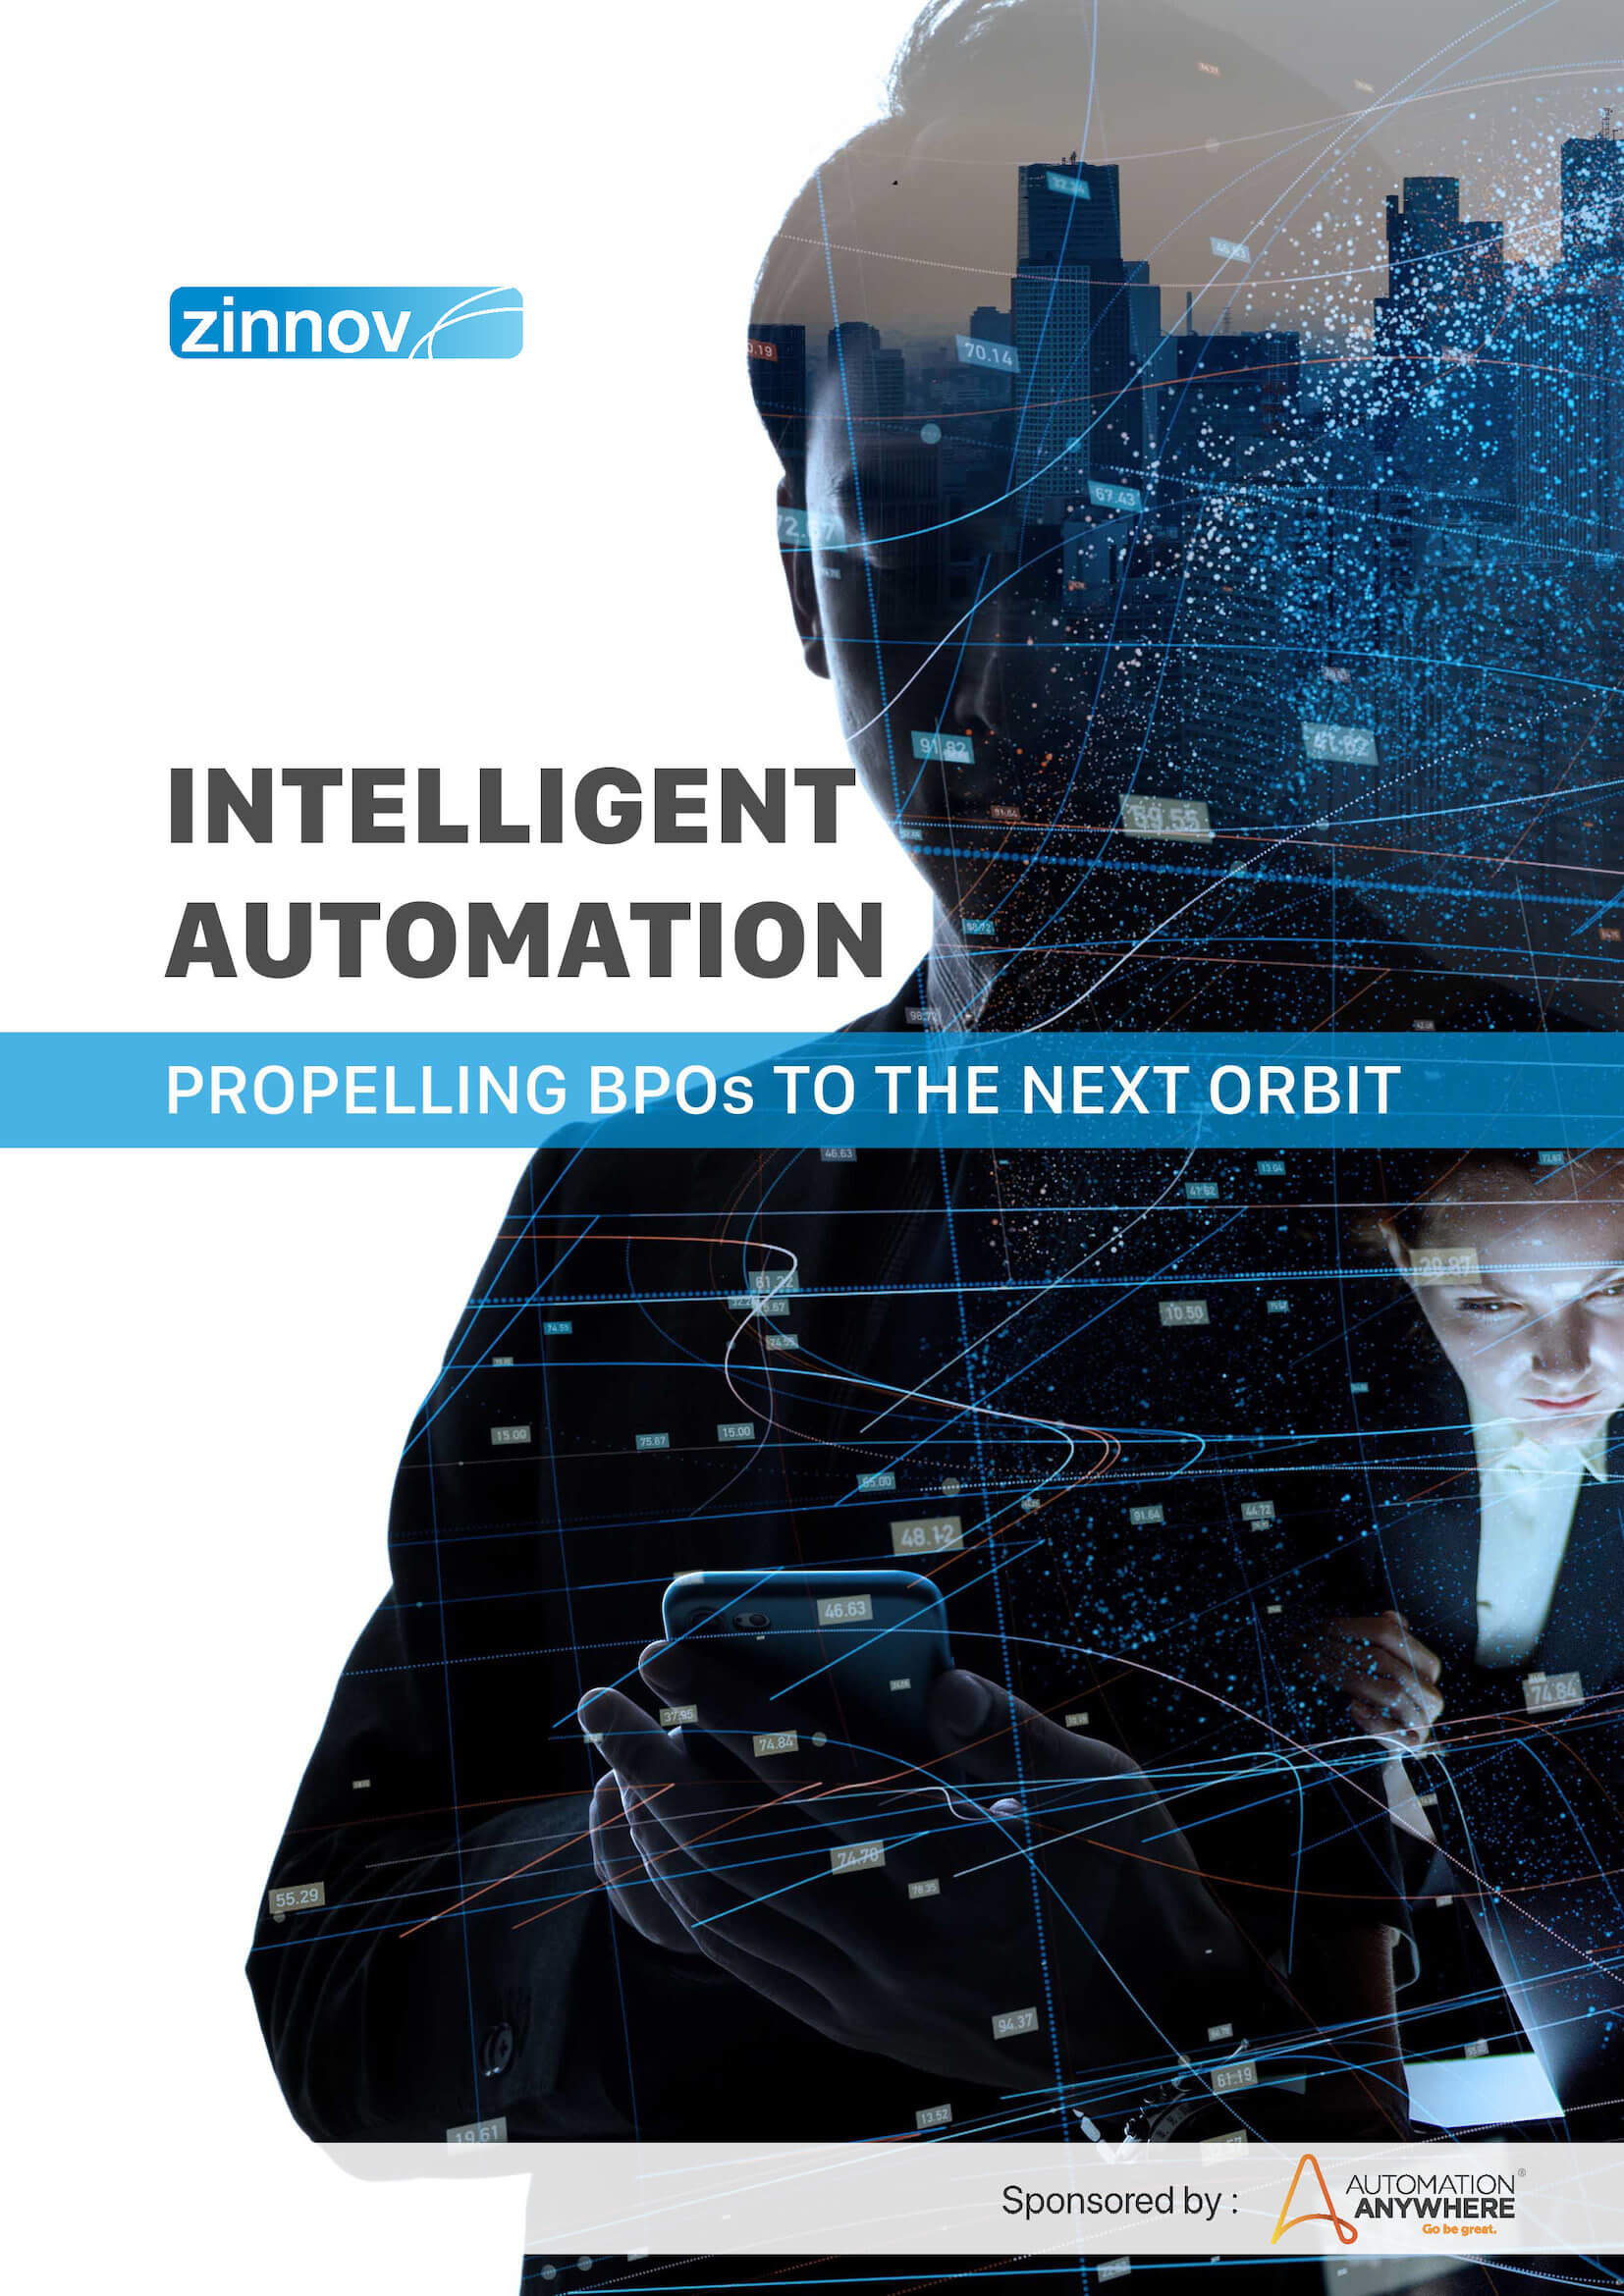 Intelligent Automation Propelling BPOs To The Next Orbit